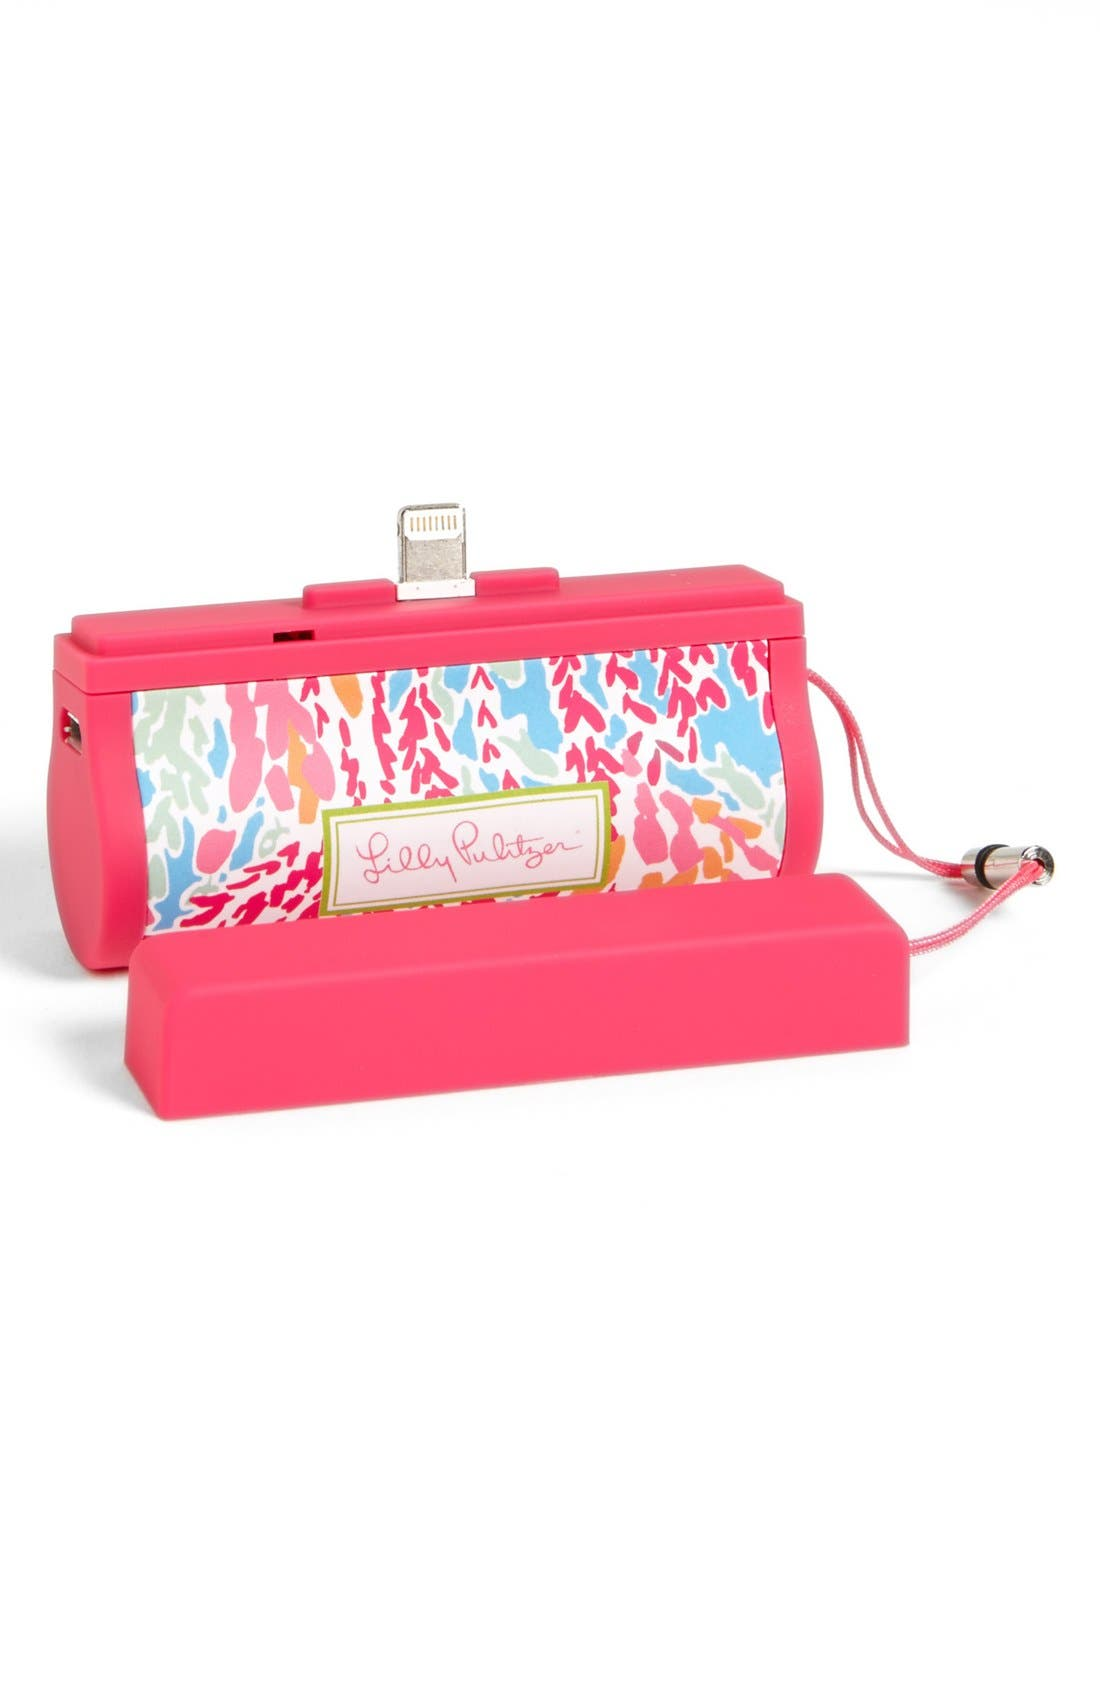 Alternate Image 2  - Lilly Pulitzer® 'Let's Cha Cha' iPhone 5 Mobile Charger